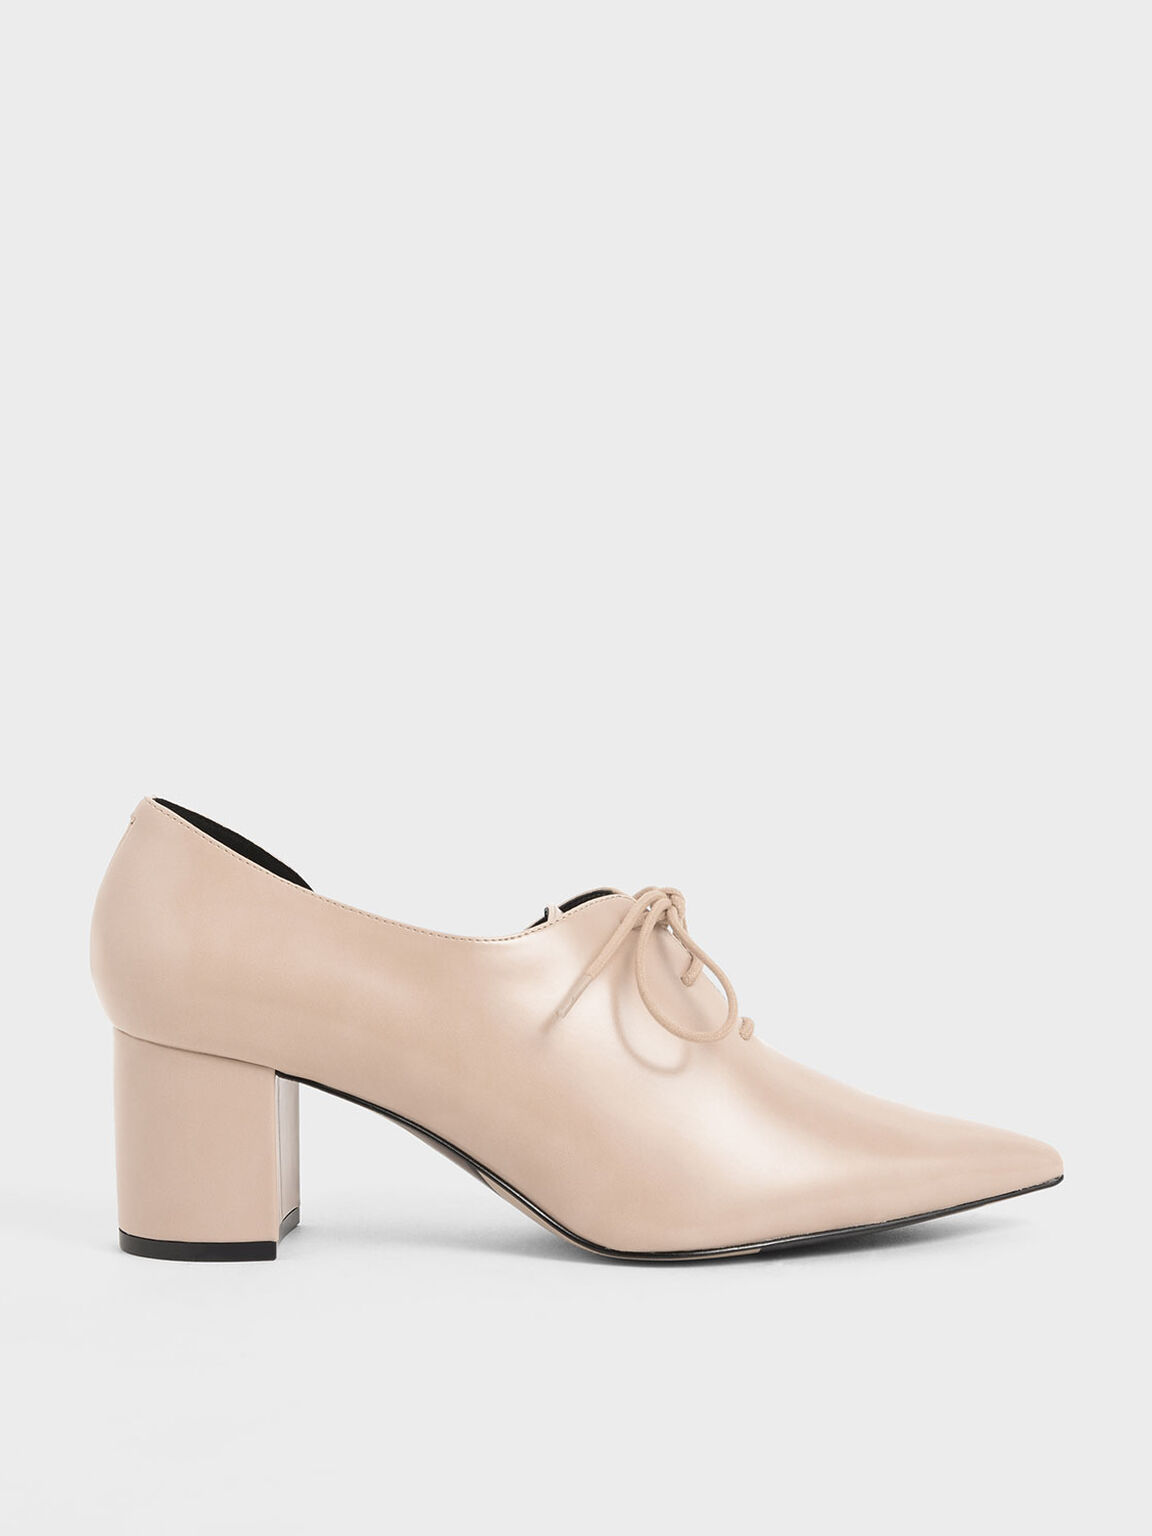 D'Orsay Oxford Block Heels, Nude, hi-res